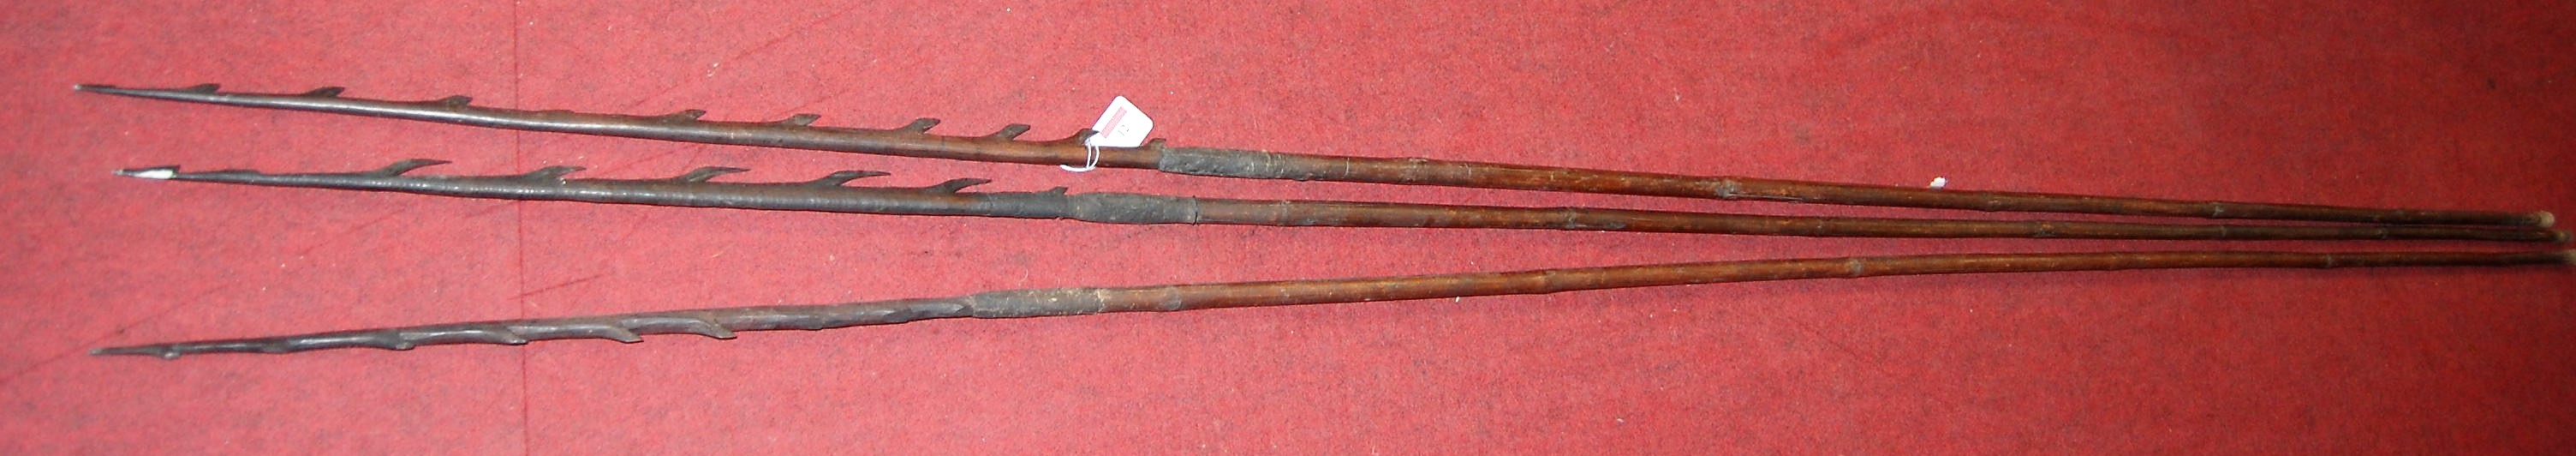 Lot 12 - A group of African fishing spears (possibly Shona), early 20th century